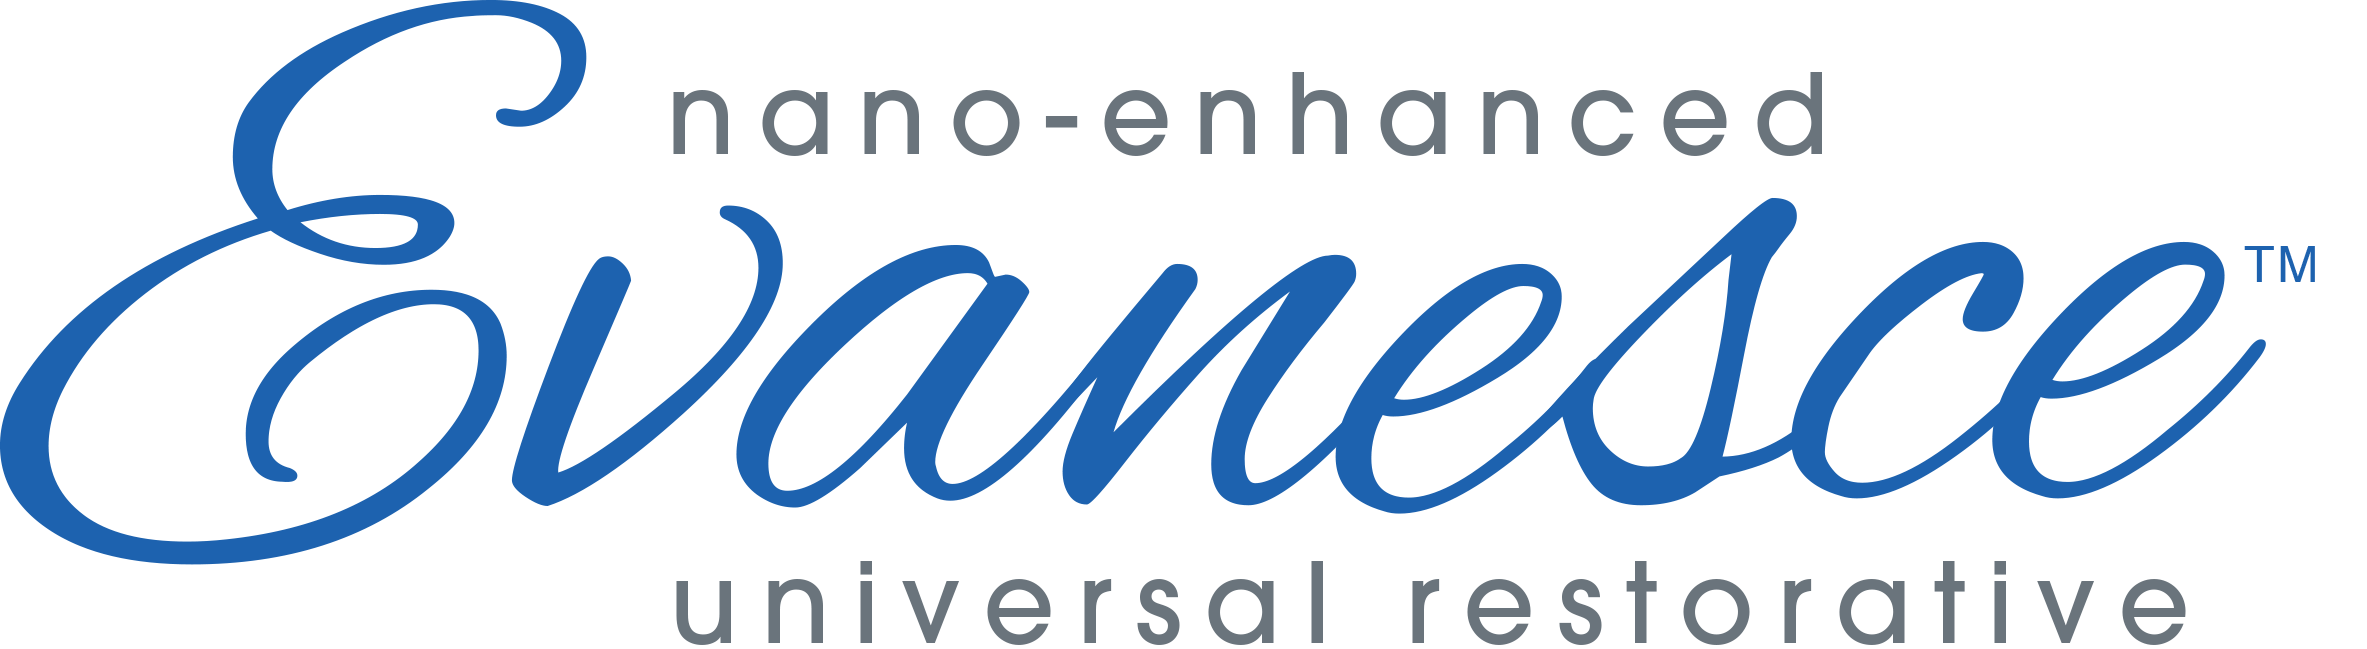 evanesce.logo.1.png